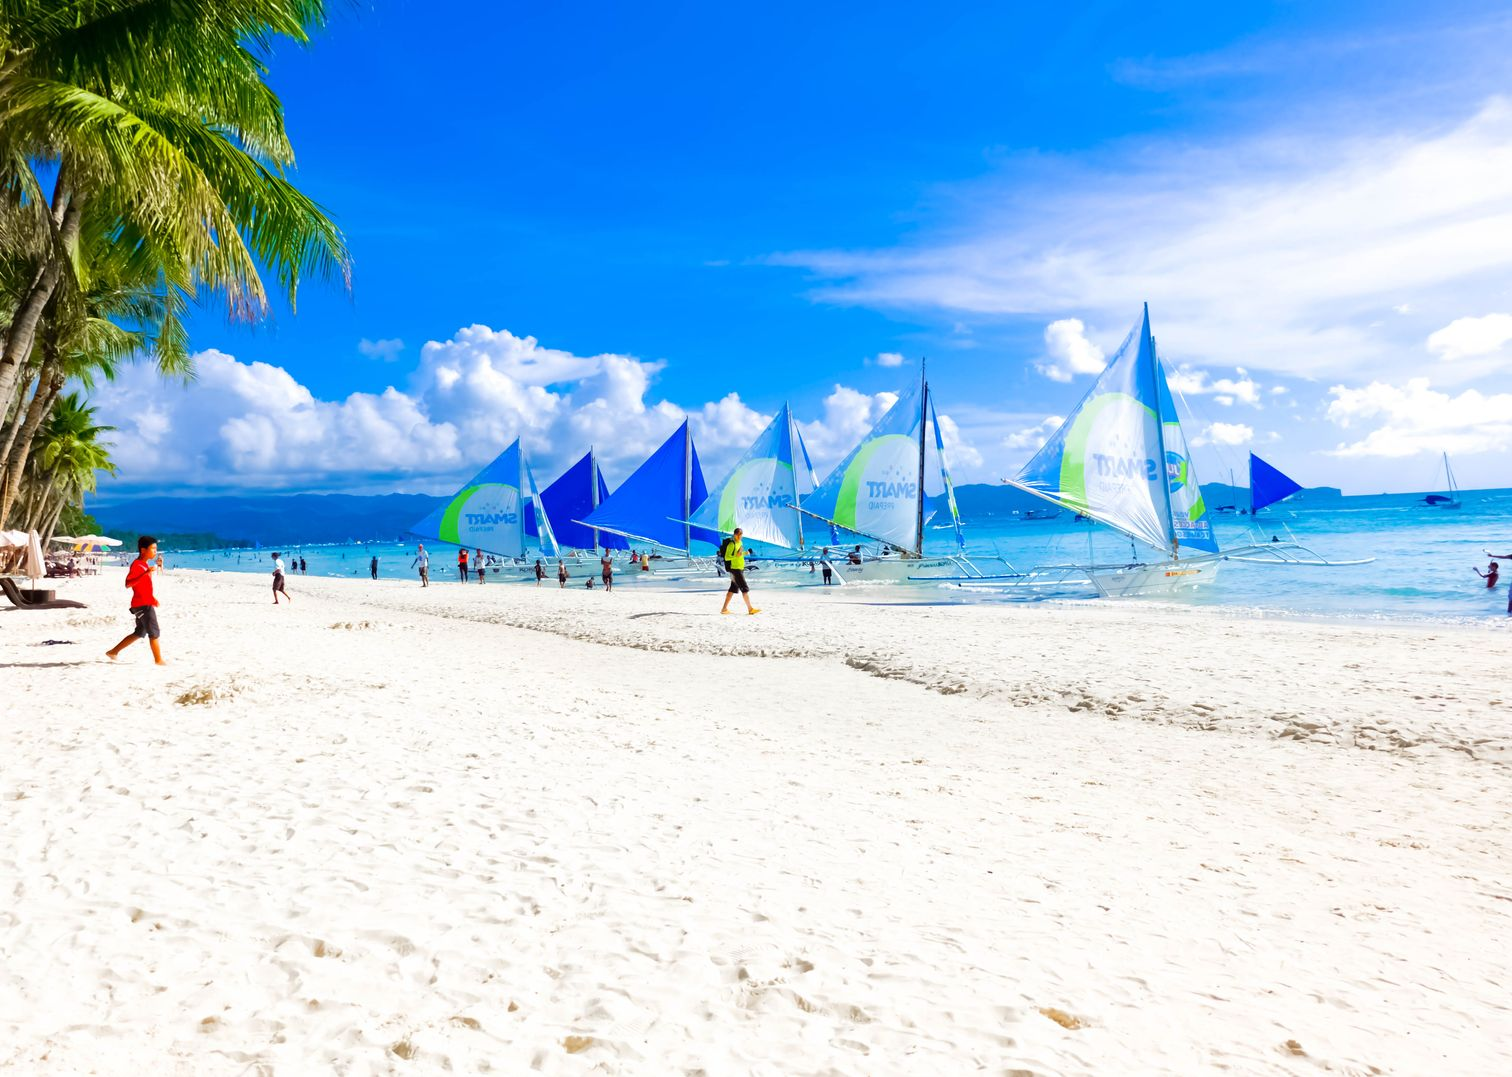 An array of outrigger sailboats moored on a white sandy beach with palm trees in Boracay Island, one of the best places to visit in the Philippines